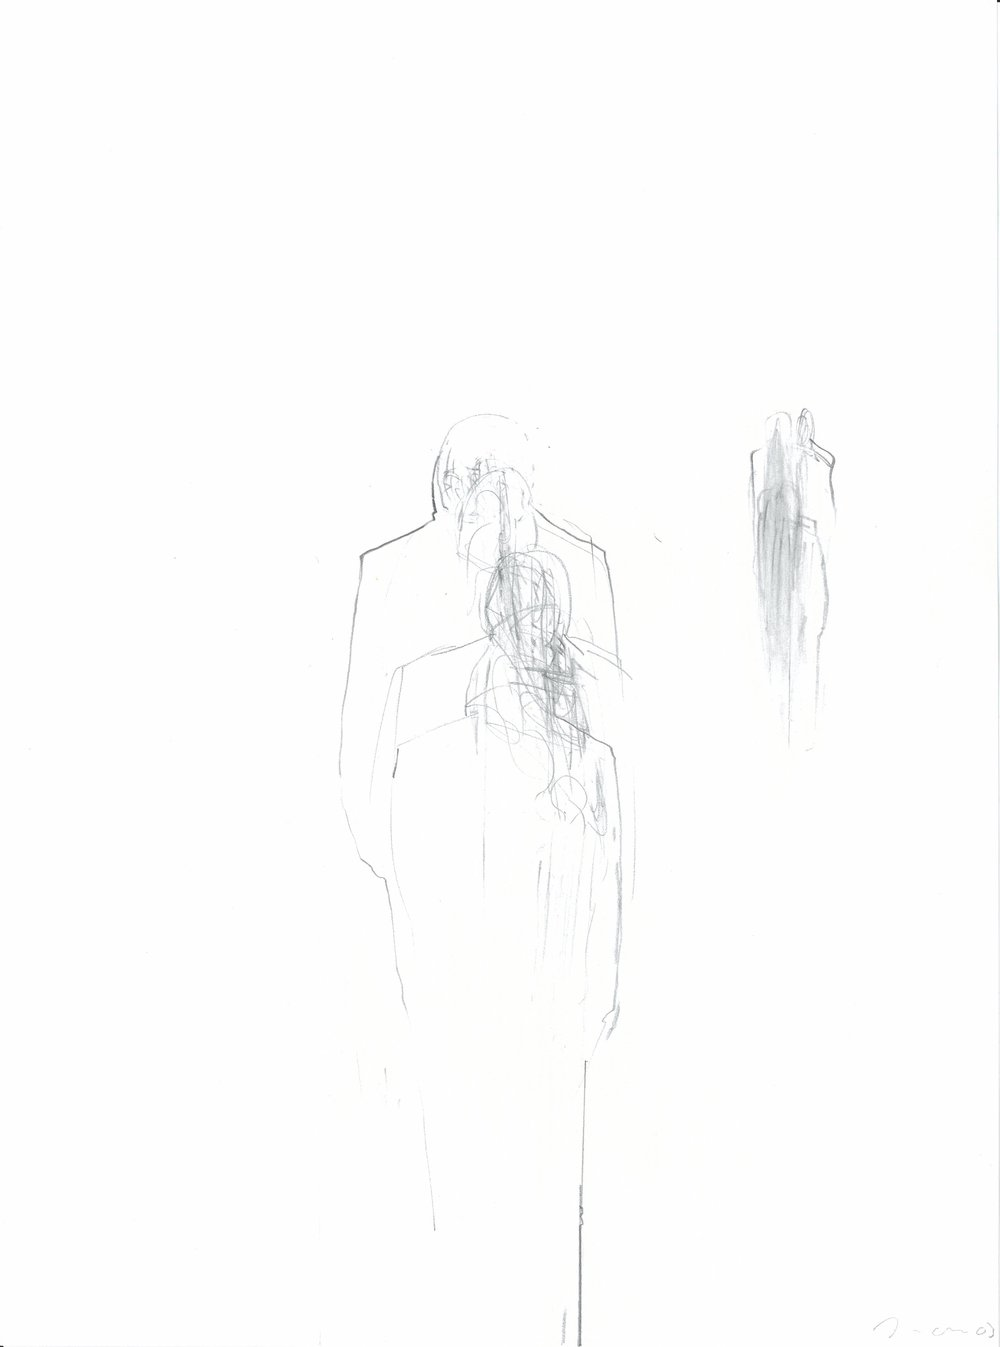 A.Zingerle - 2001, Pencil on paper, 40x30 (9).jpg